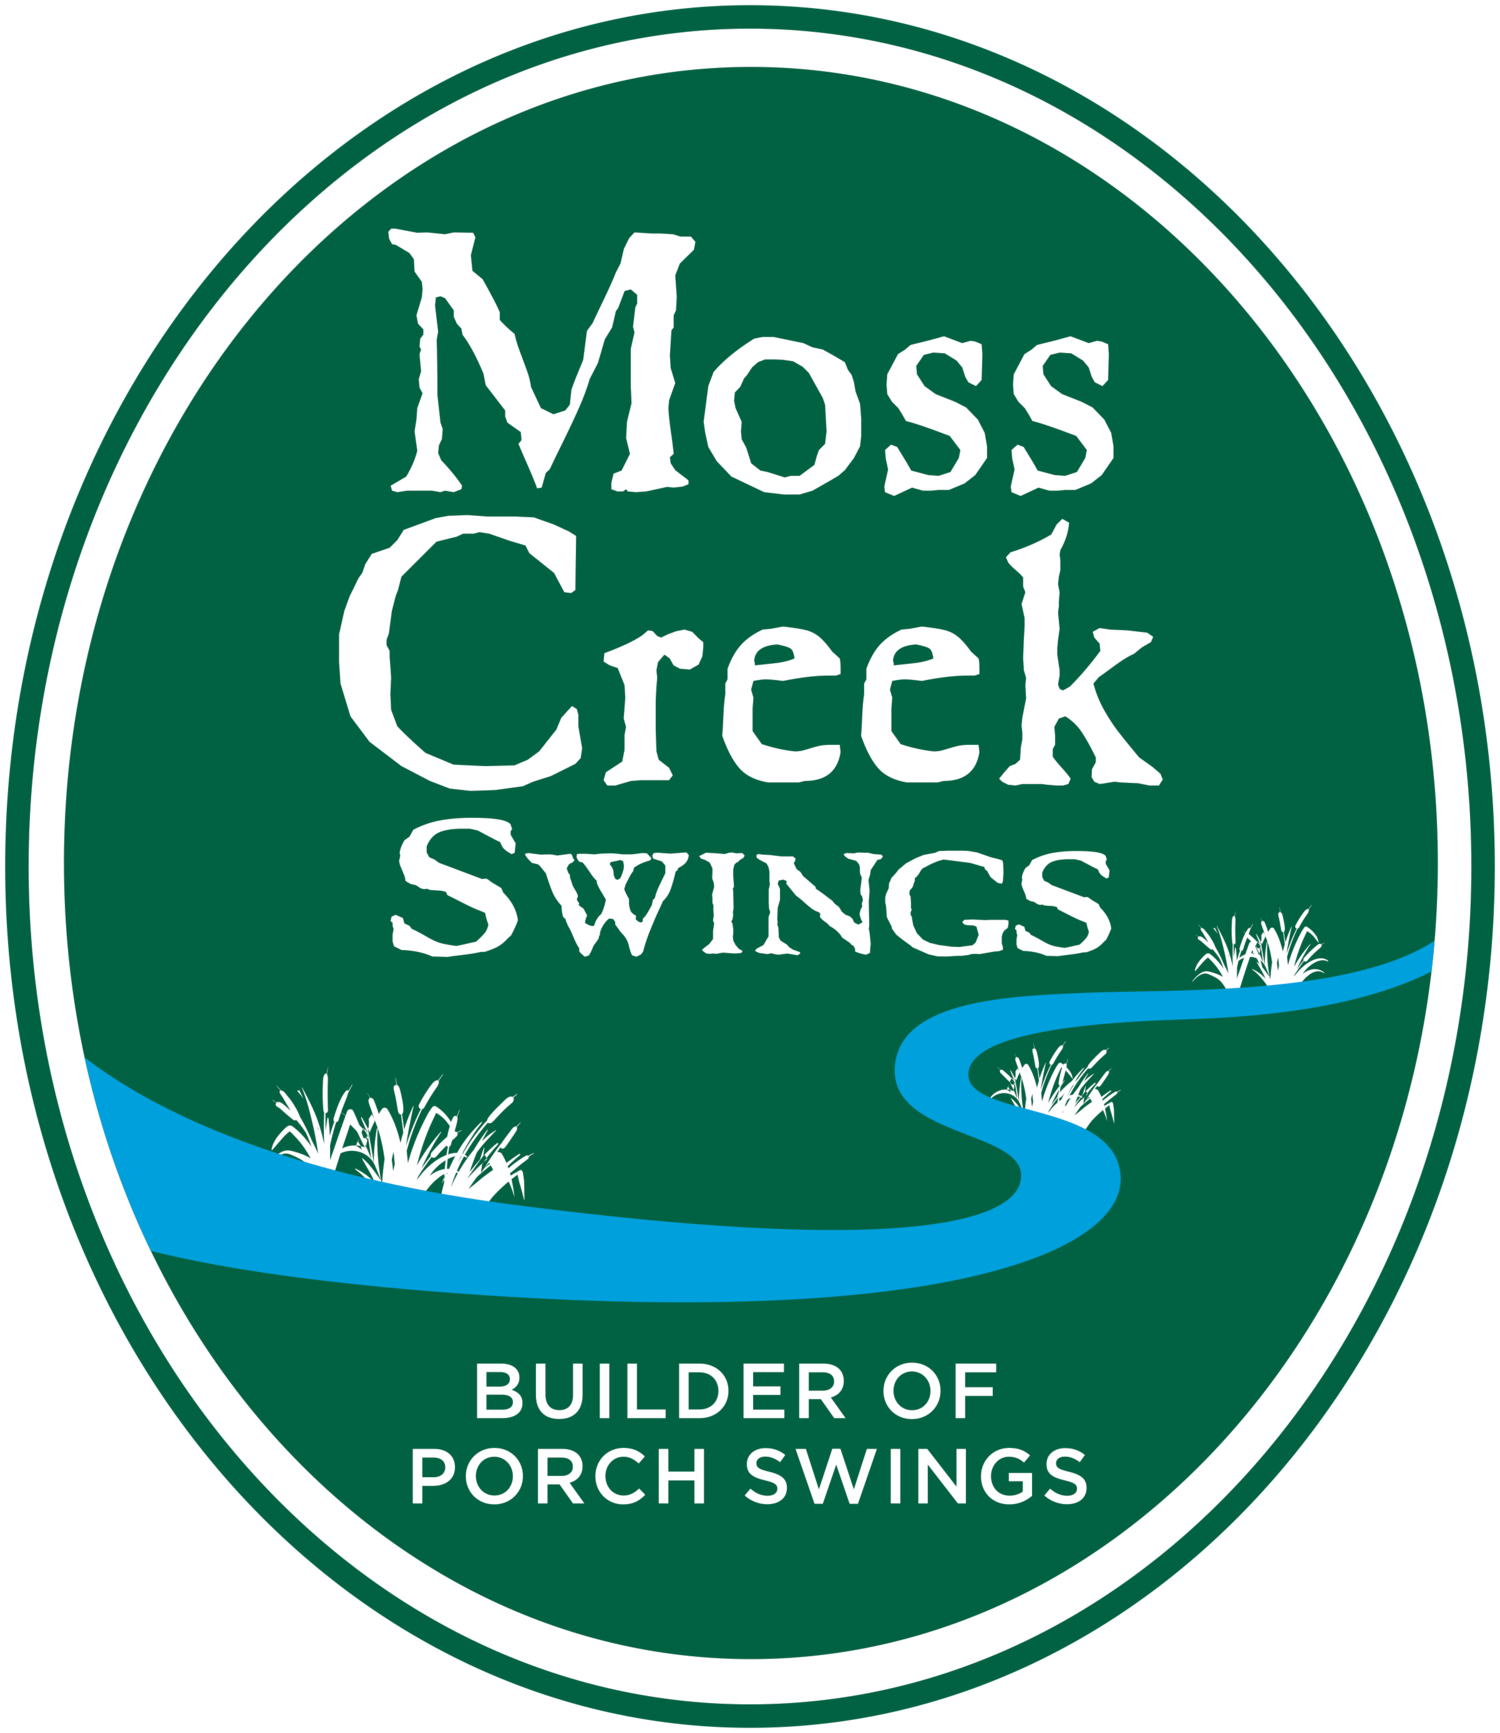 Moss Creek Swings